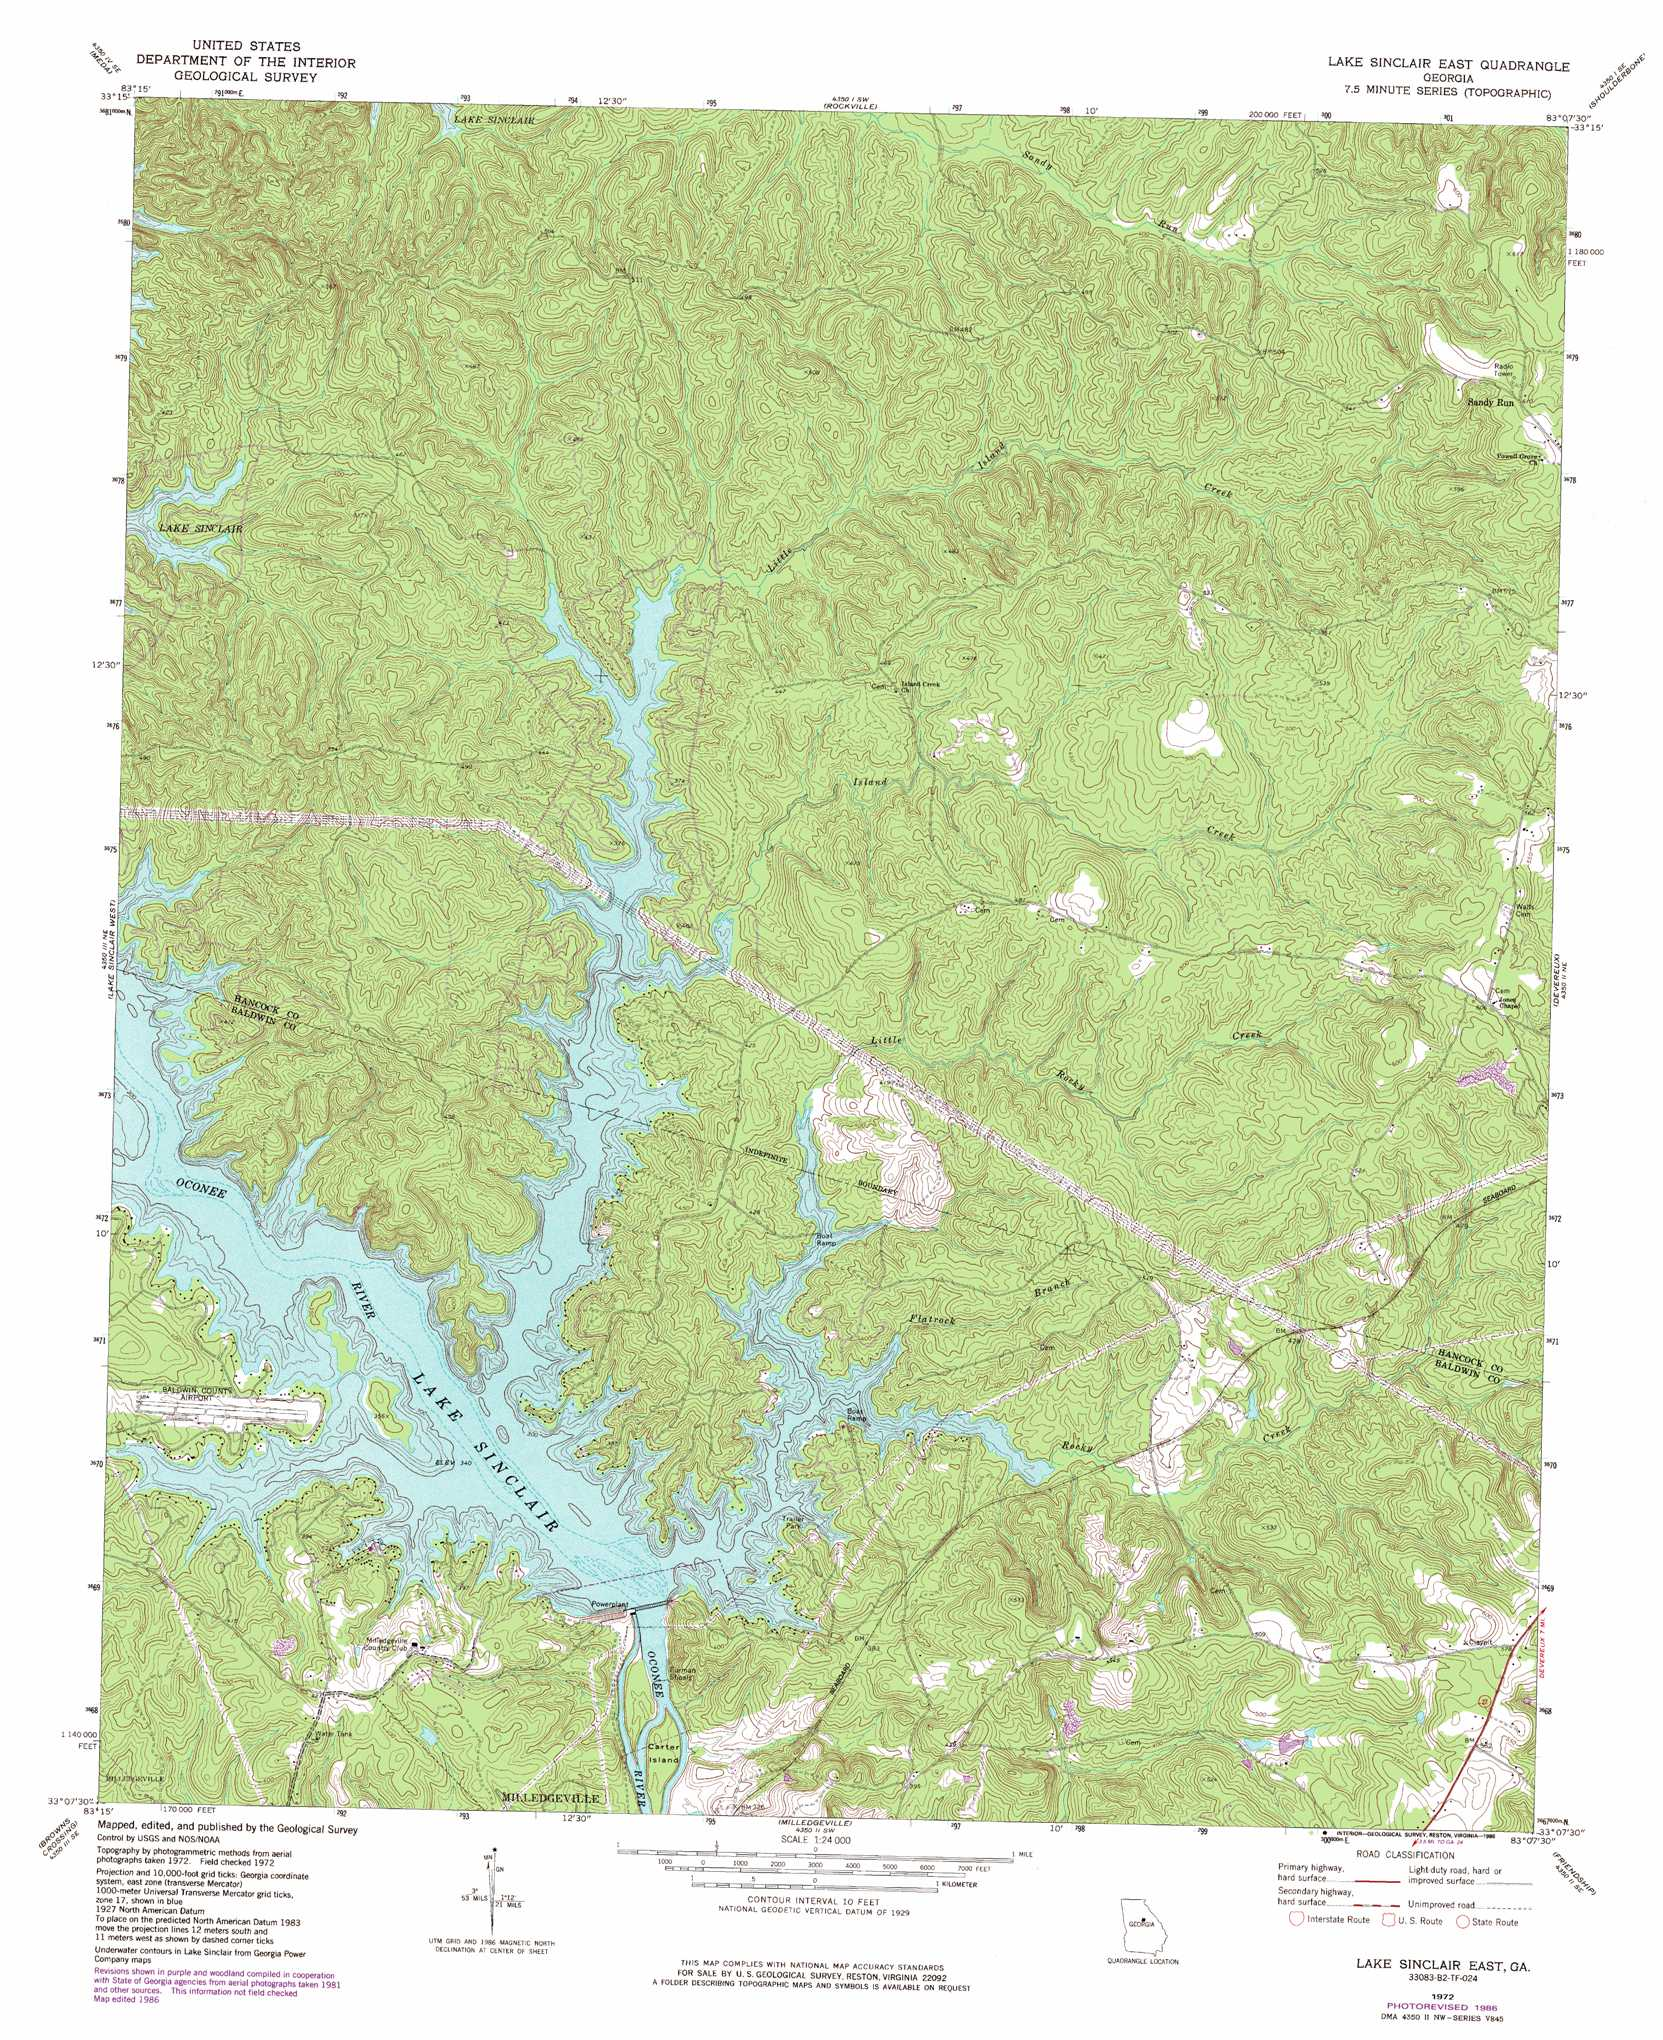 Lake Sinclair East Topographic Map GA USGS Topo Quad B - Georgia map lakes